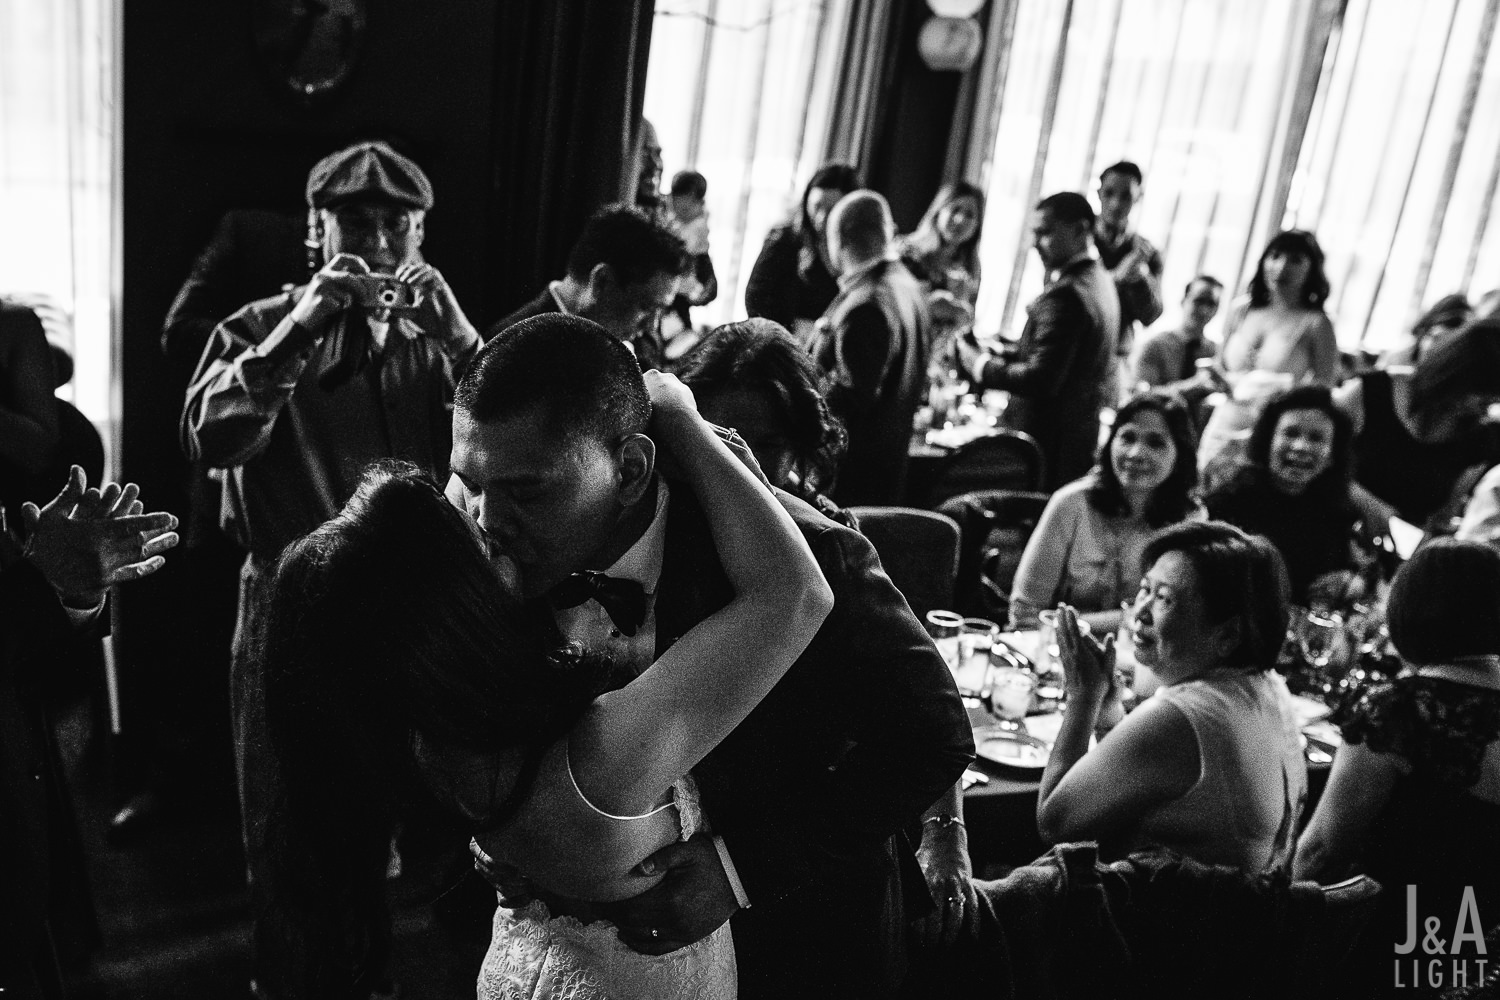 20160319-CatJey-1300FillmoreWedding-056.jpg